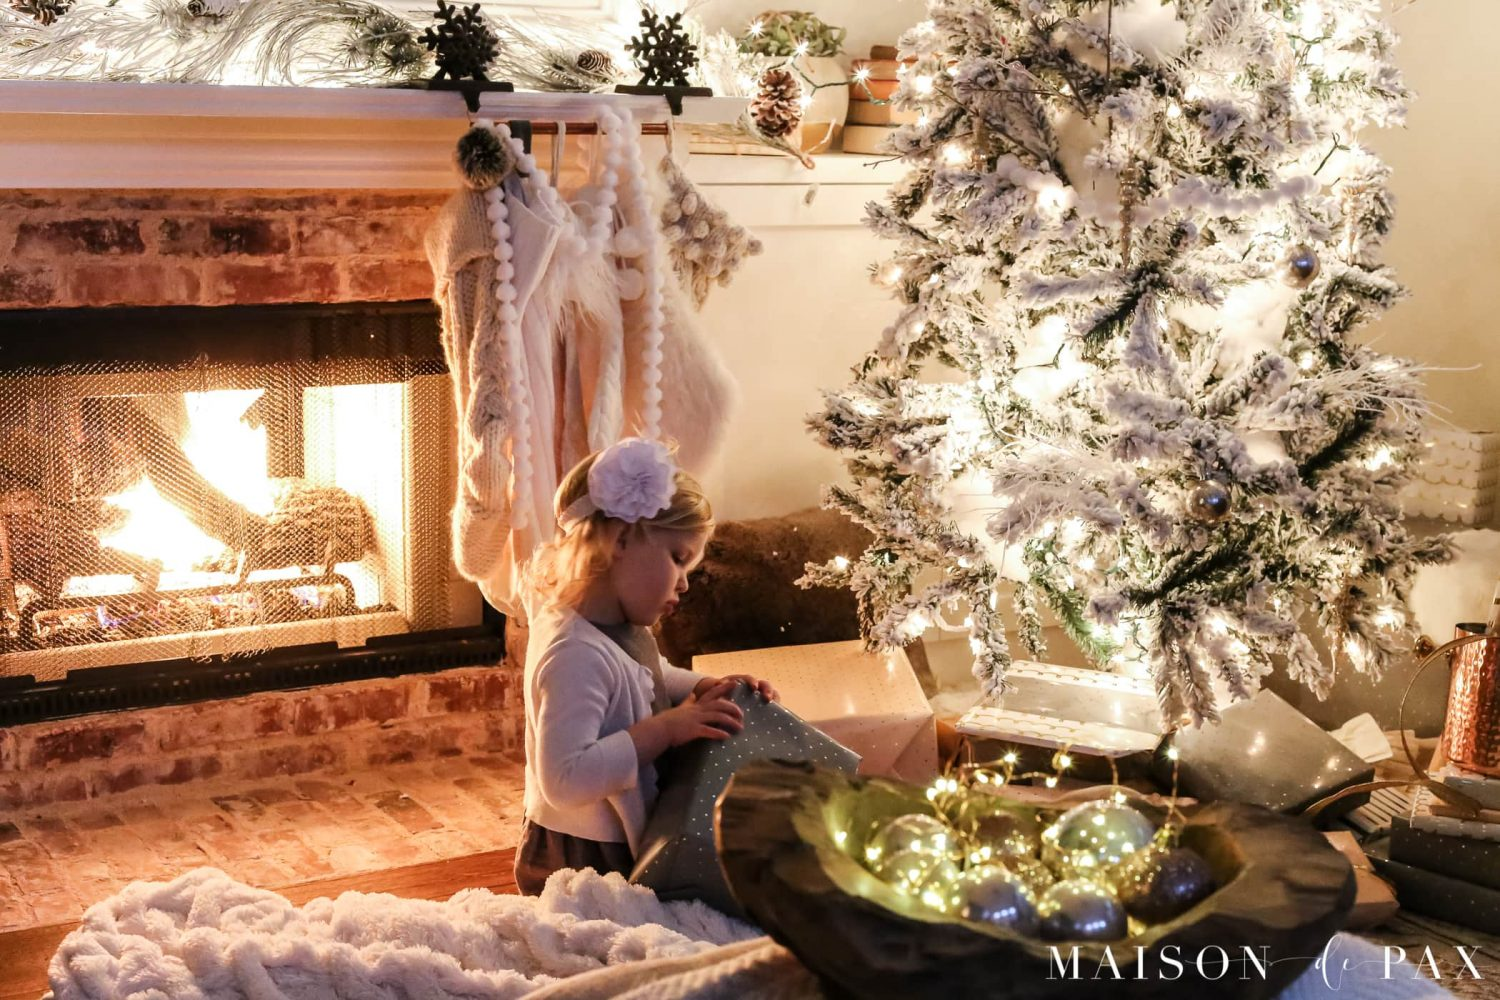 girl opening presents beside Christmas tree in front of roaring fire | Maison de Pax